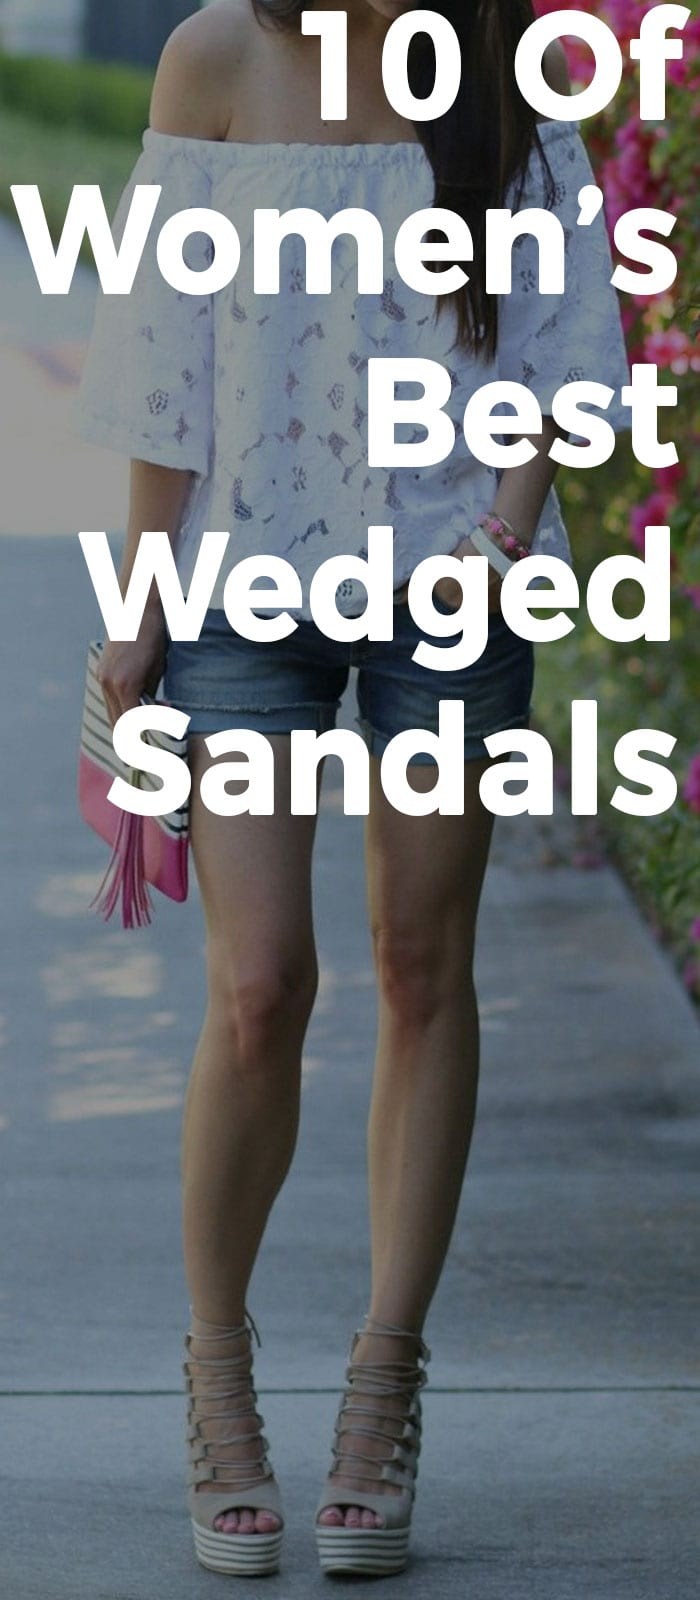 10 Of Women's Best Wedged Sandals For Women